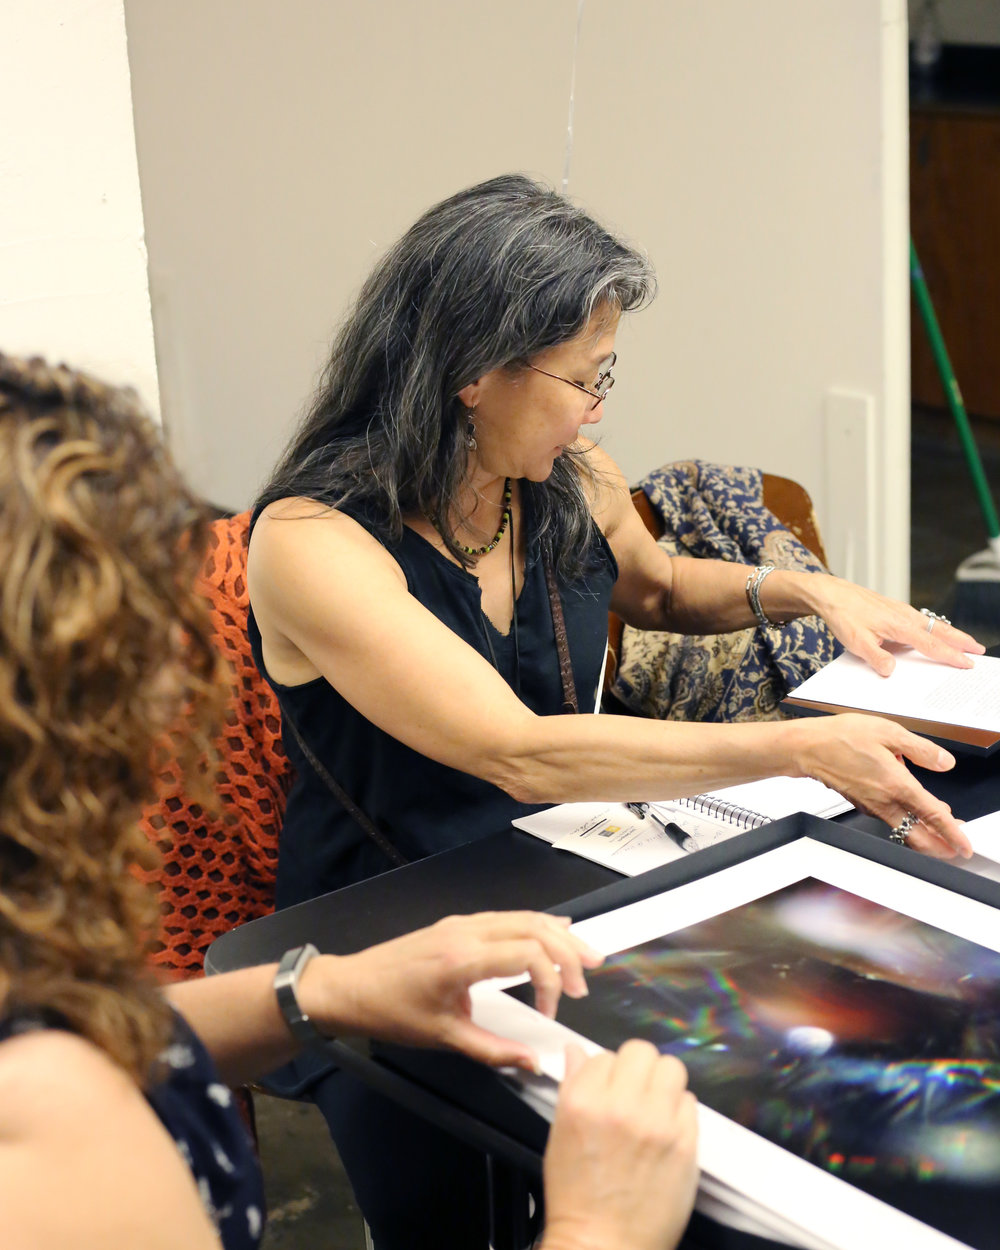 June Sekiguchi providing feedback at the Members Portfolio Review. Photo credit: Amber Lee